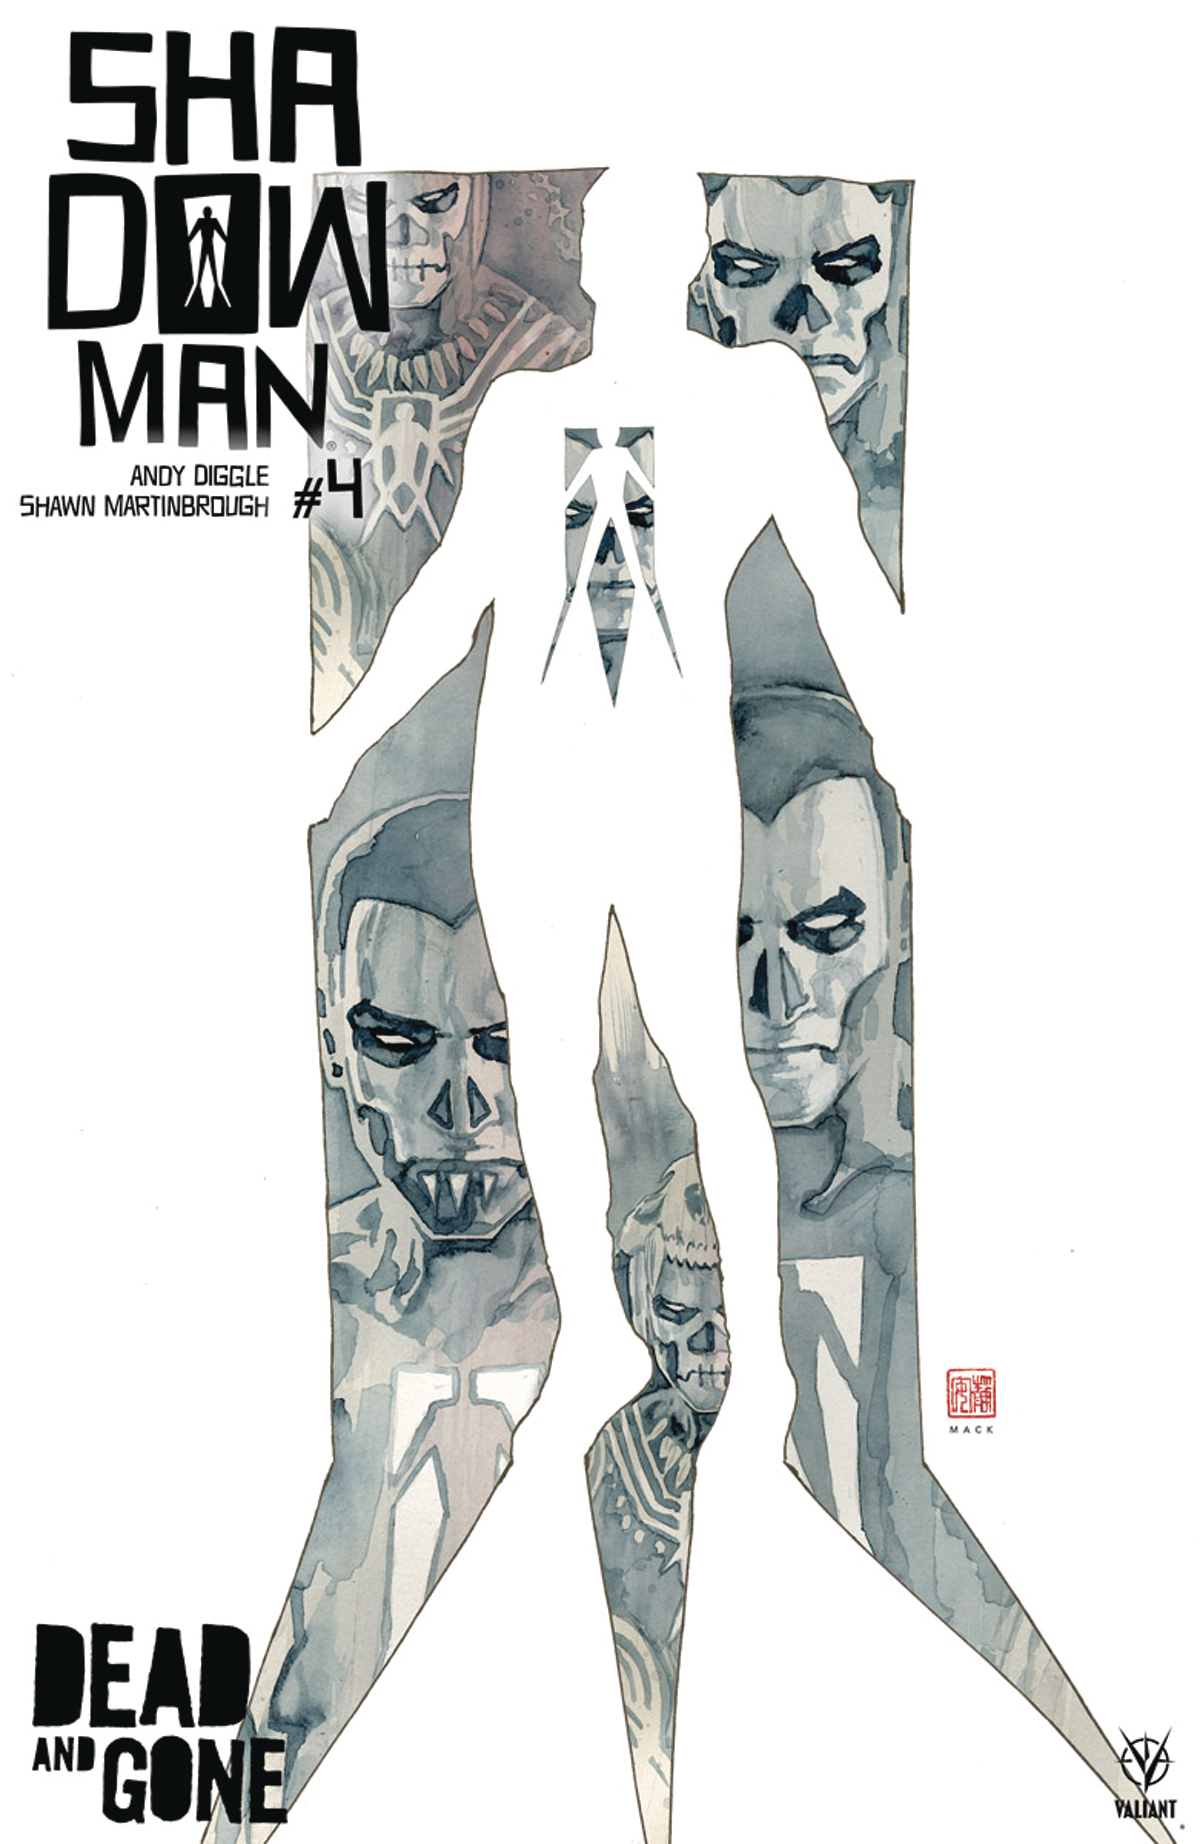 SHADOWMAN (2018) #4 (NEW ARC) CVR B MACK